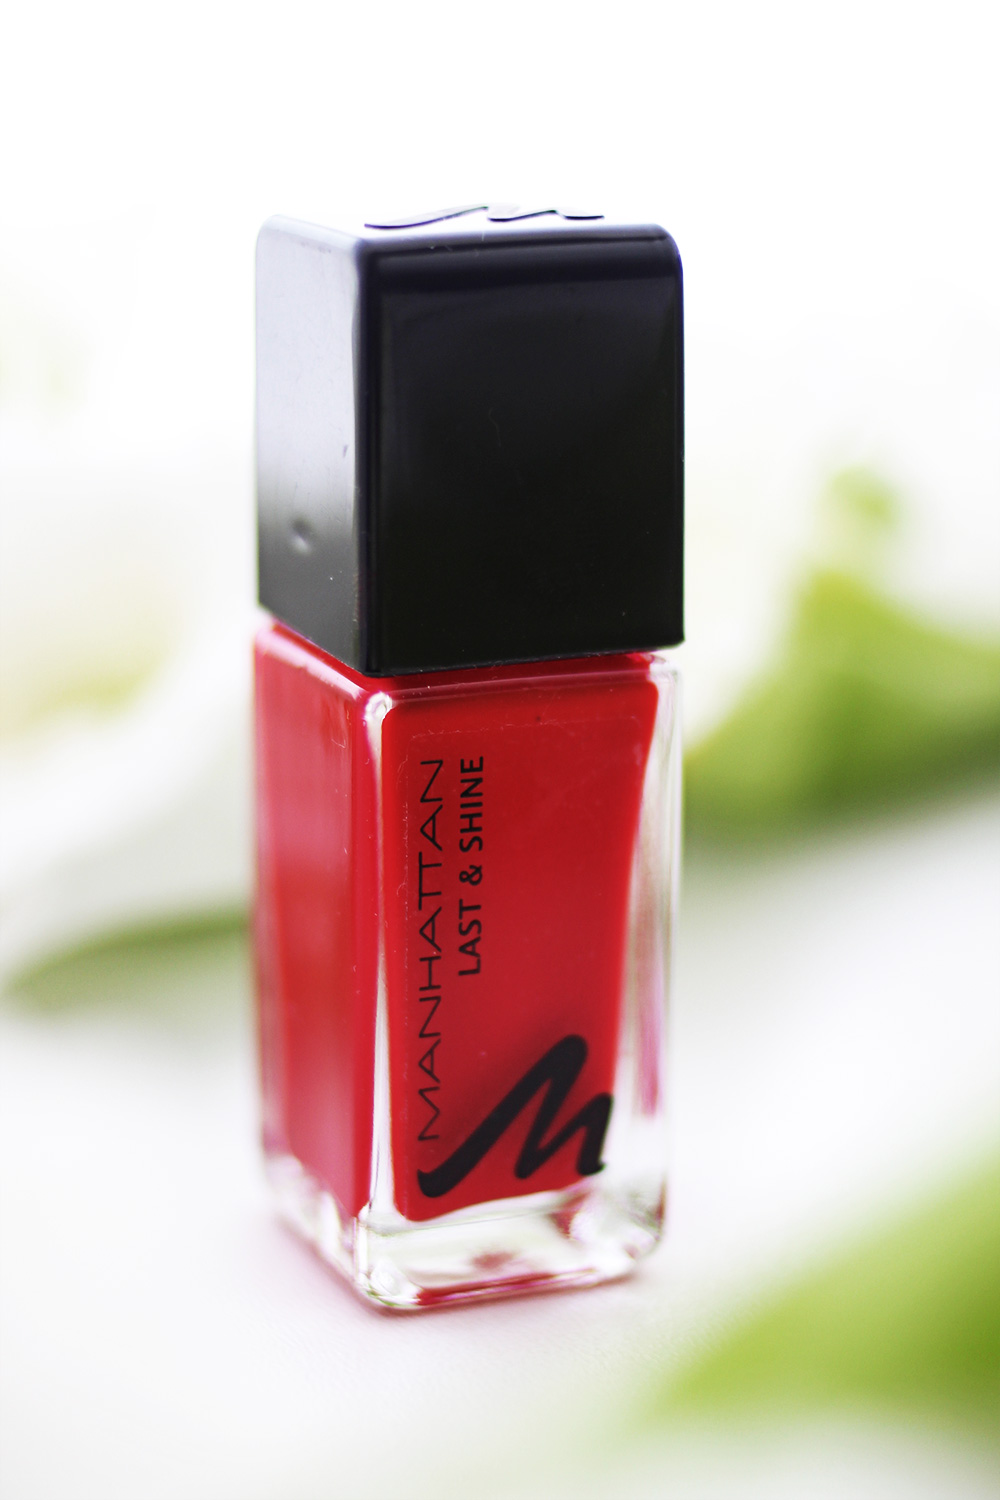 Manhatten-last-and-shine-review-beauty